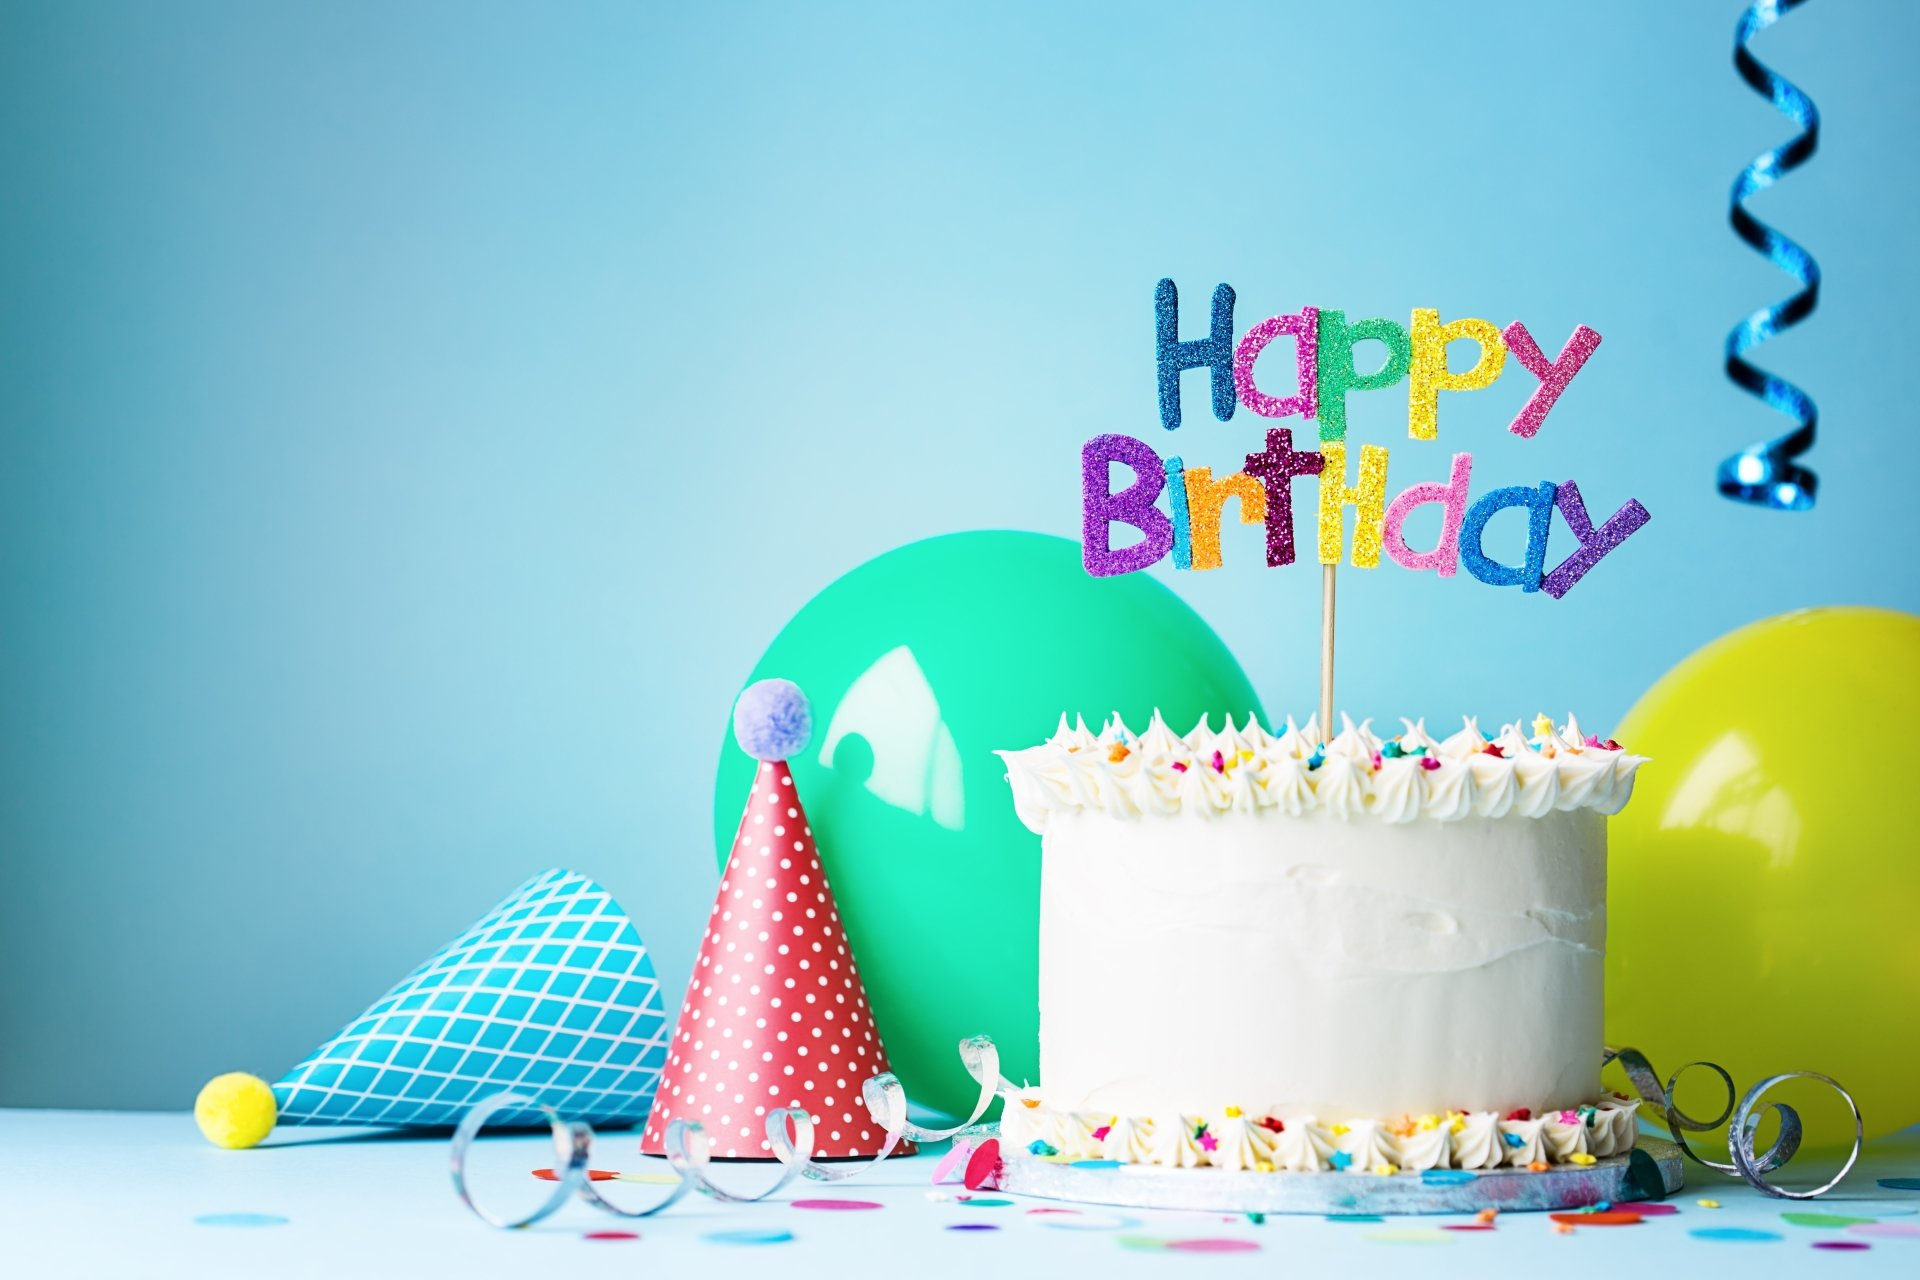 Holiday - Birthday  Happy Birthday Colors Cake Pastry Wallpaper